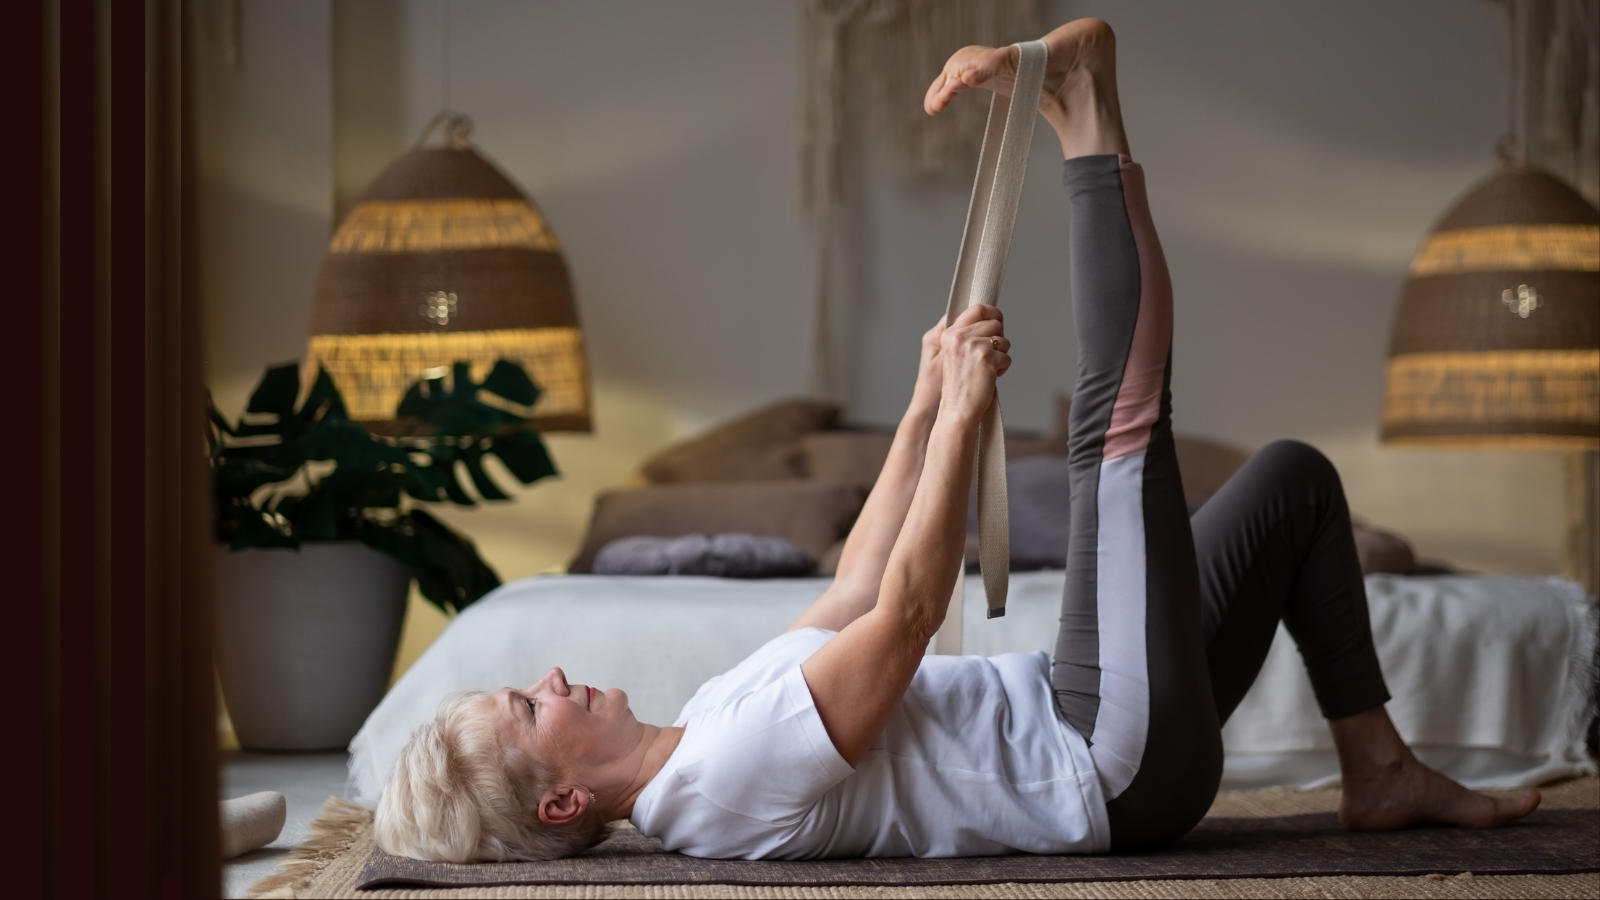 Yoga student practicing Reclined Hand to Big Toe pose with reference to flexion and extension